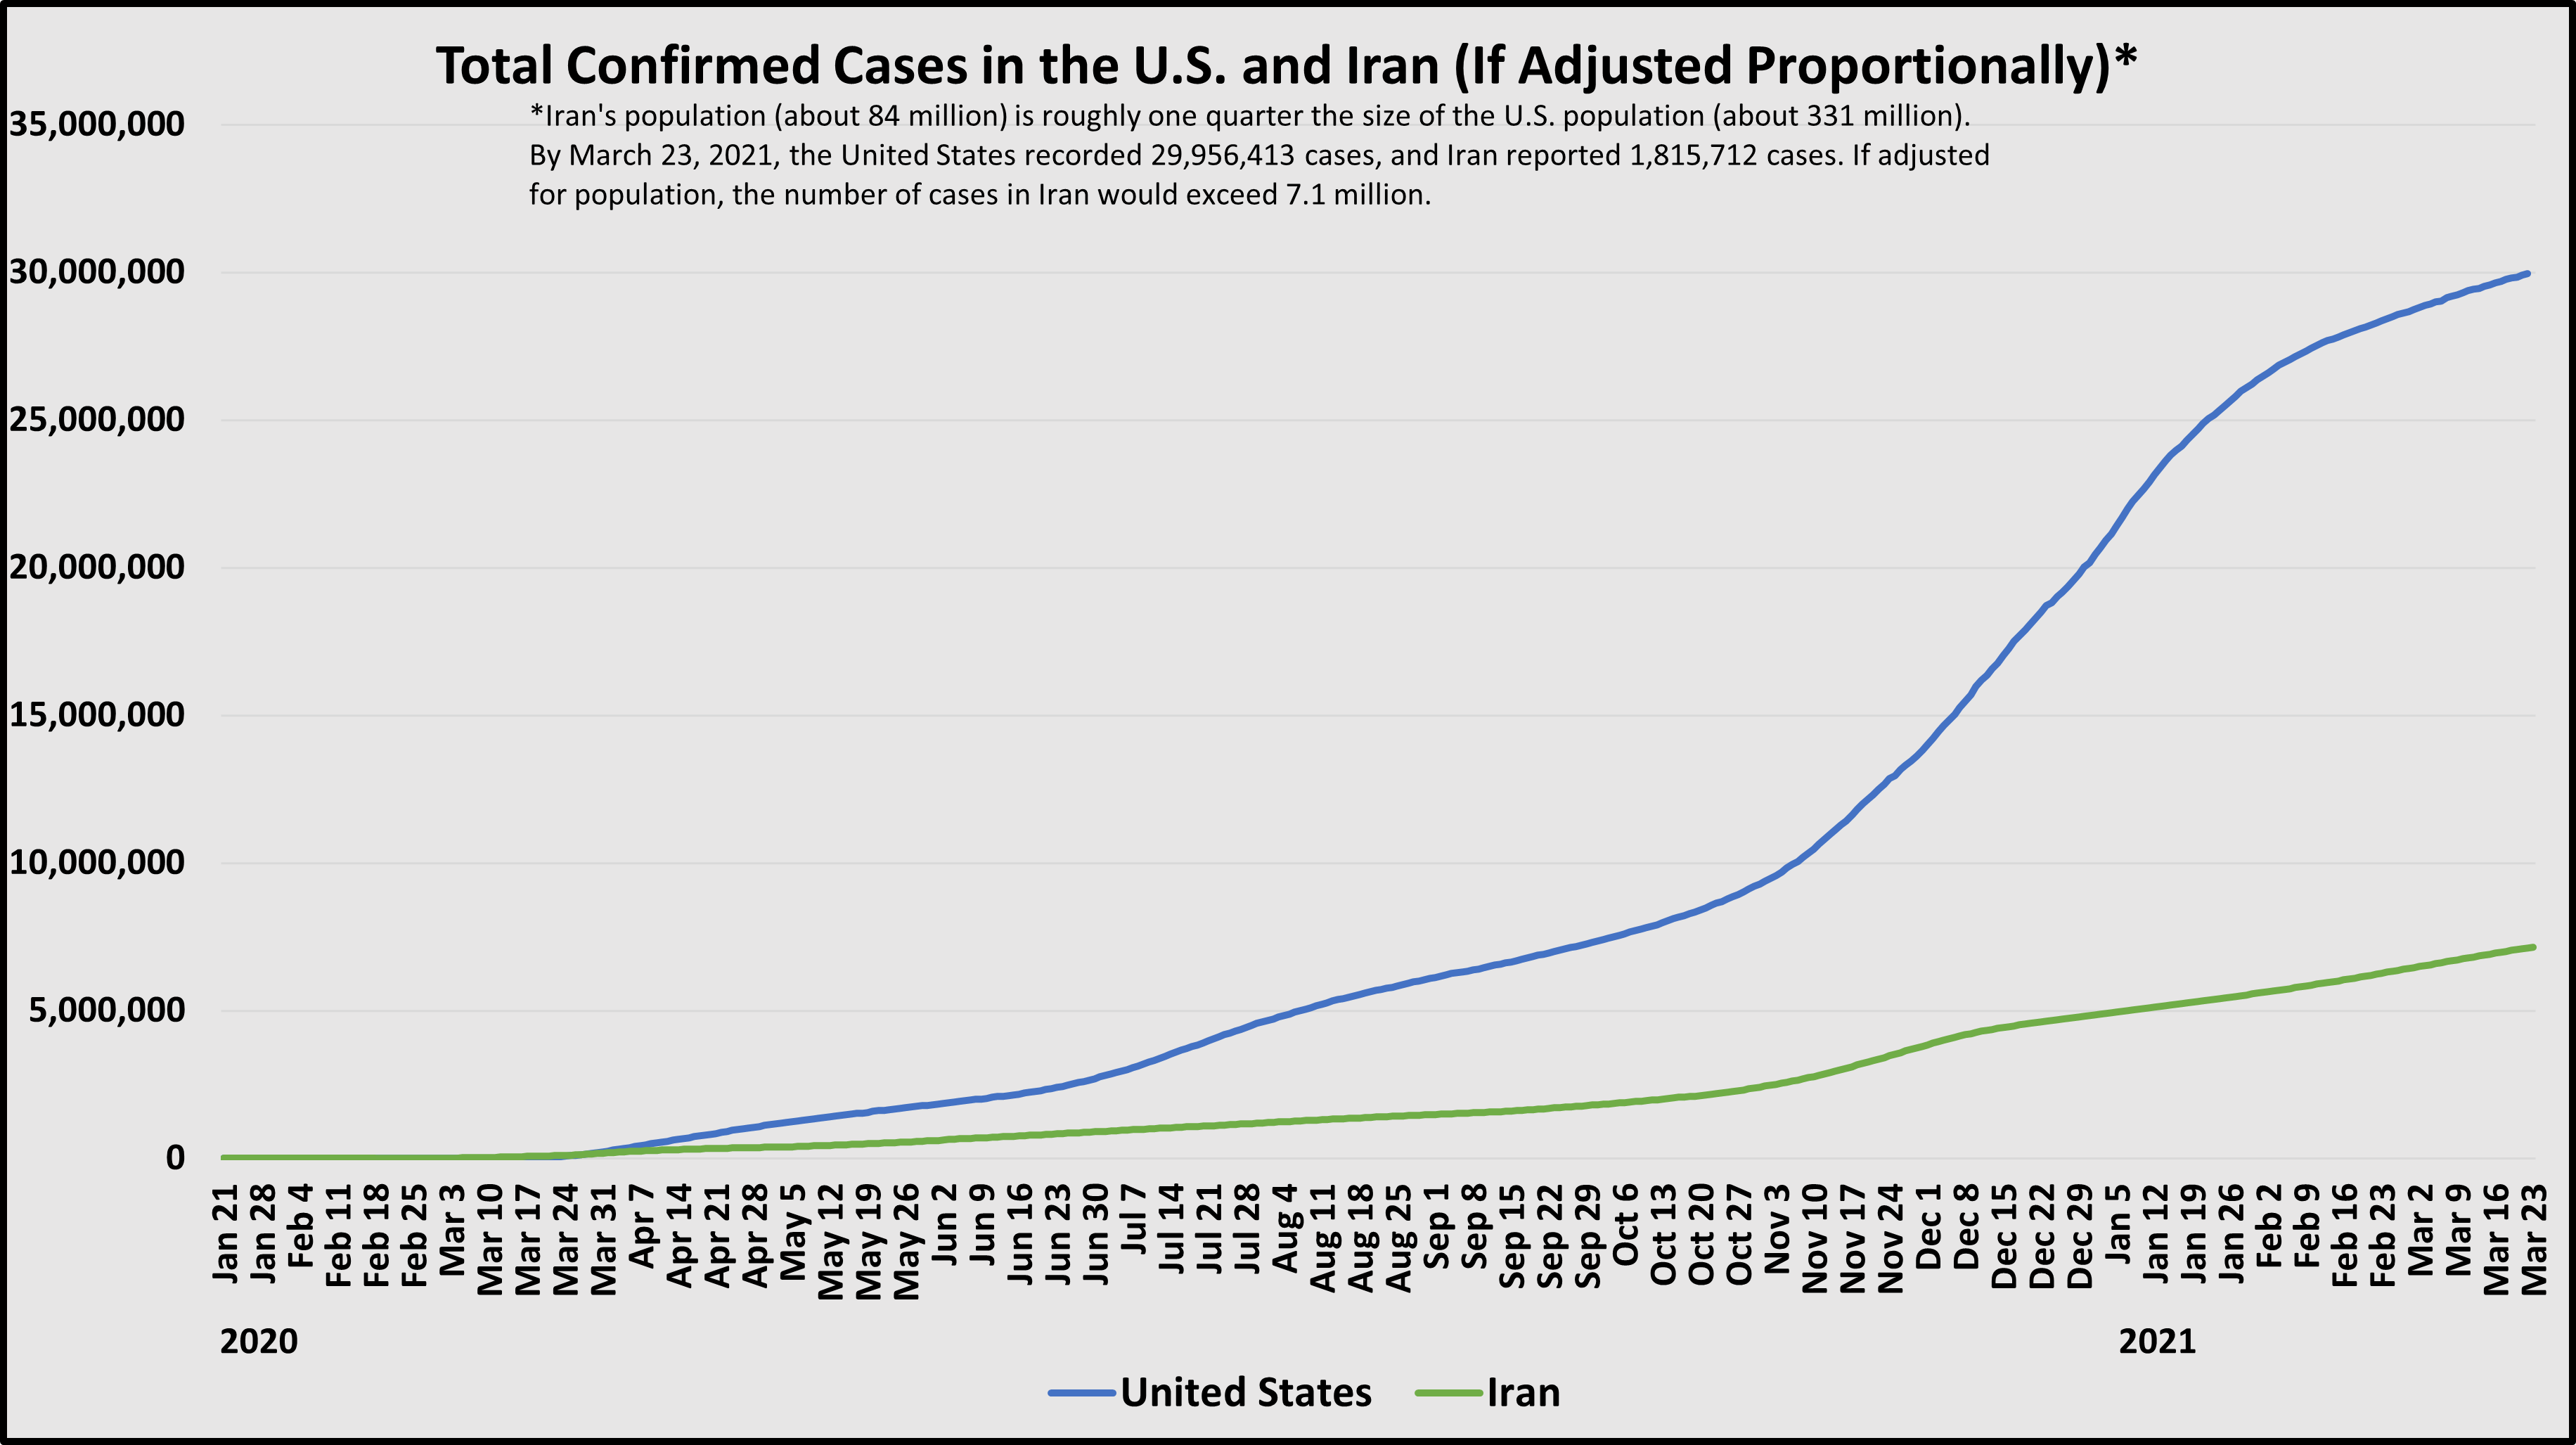 A chart showing total COVID cases if adjusted proportionality